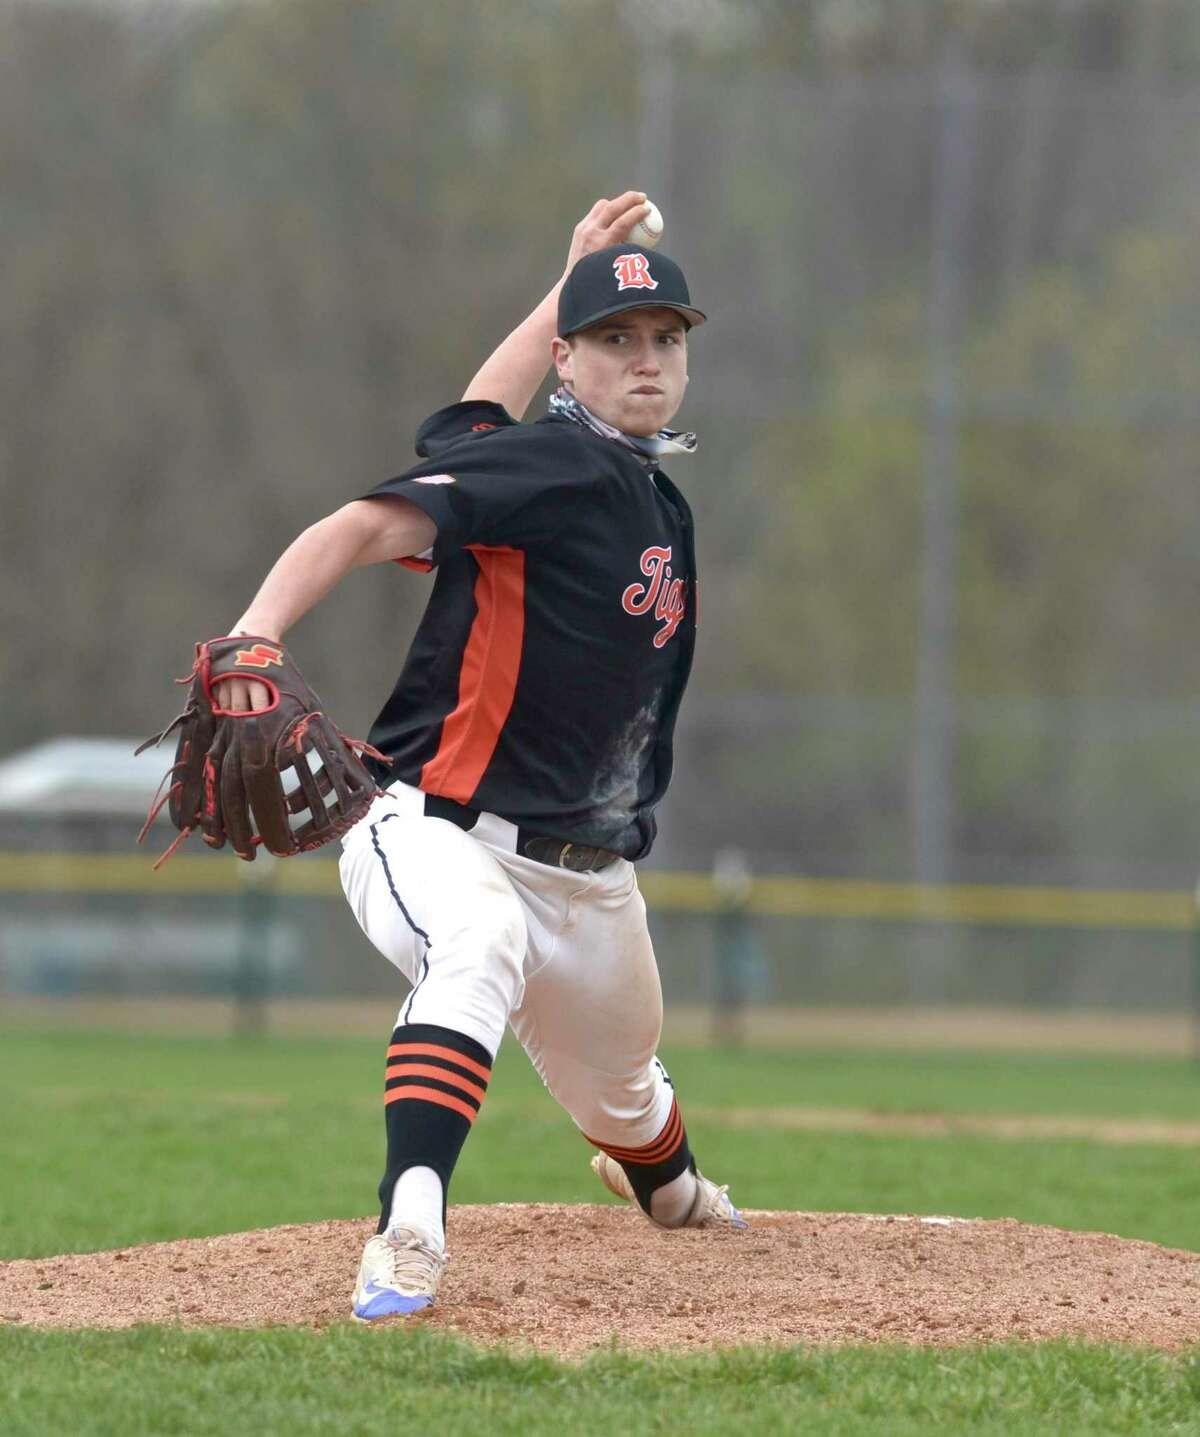 Ridgefield's Luke D'Antonio (1) pitches in the first inning of the boys baseball game between Ridgefield and Danbury high schools, Monday April 19, 2021, at Danbury High School, Danbury, Conn.